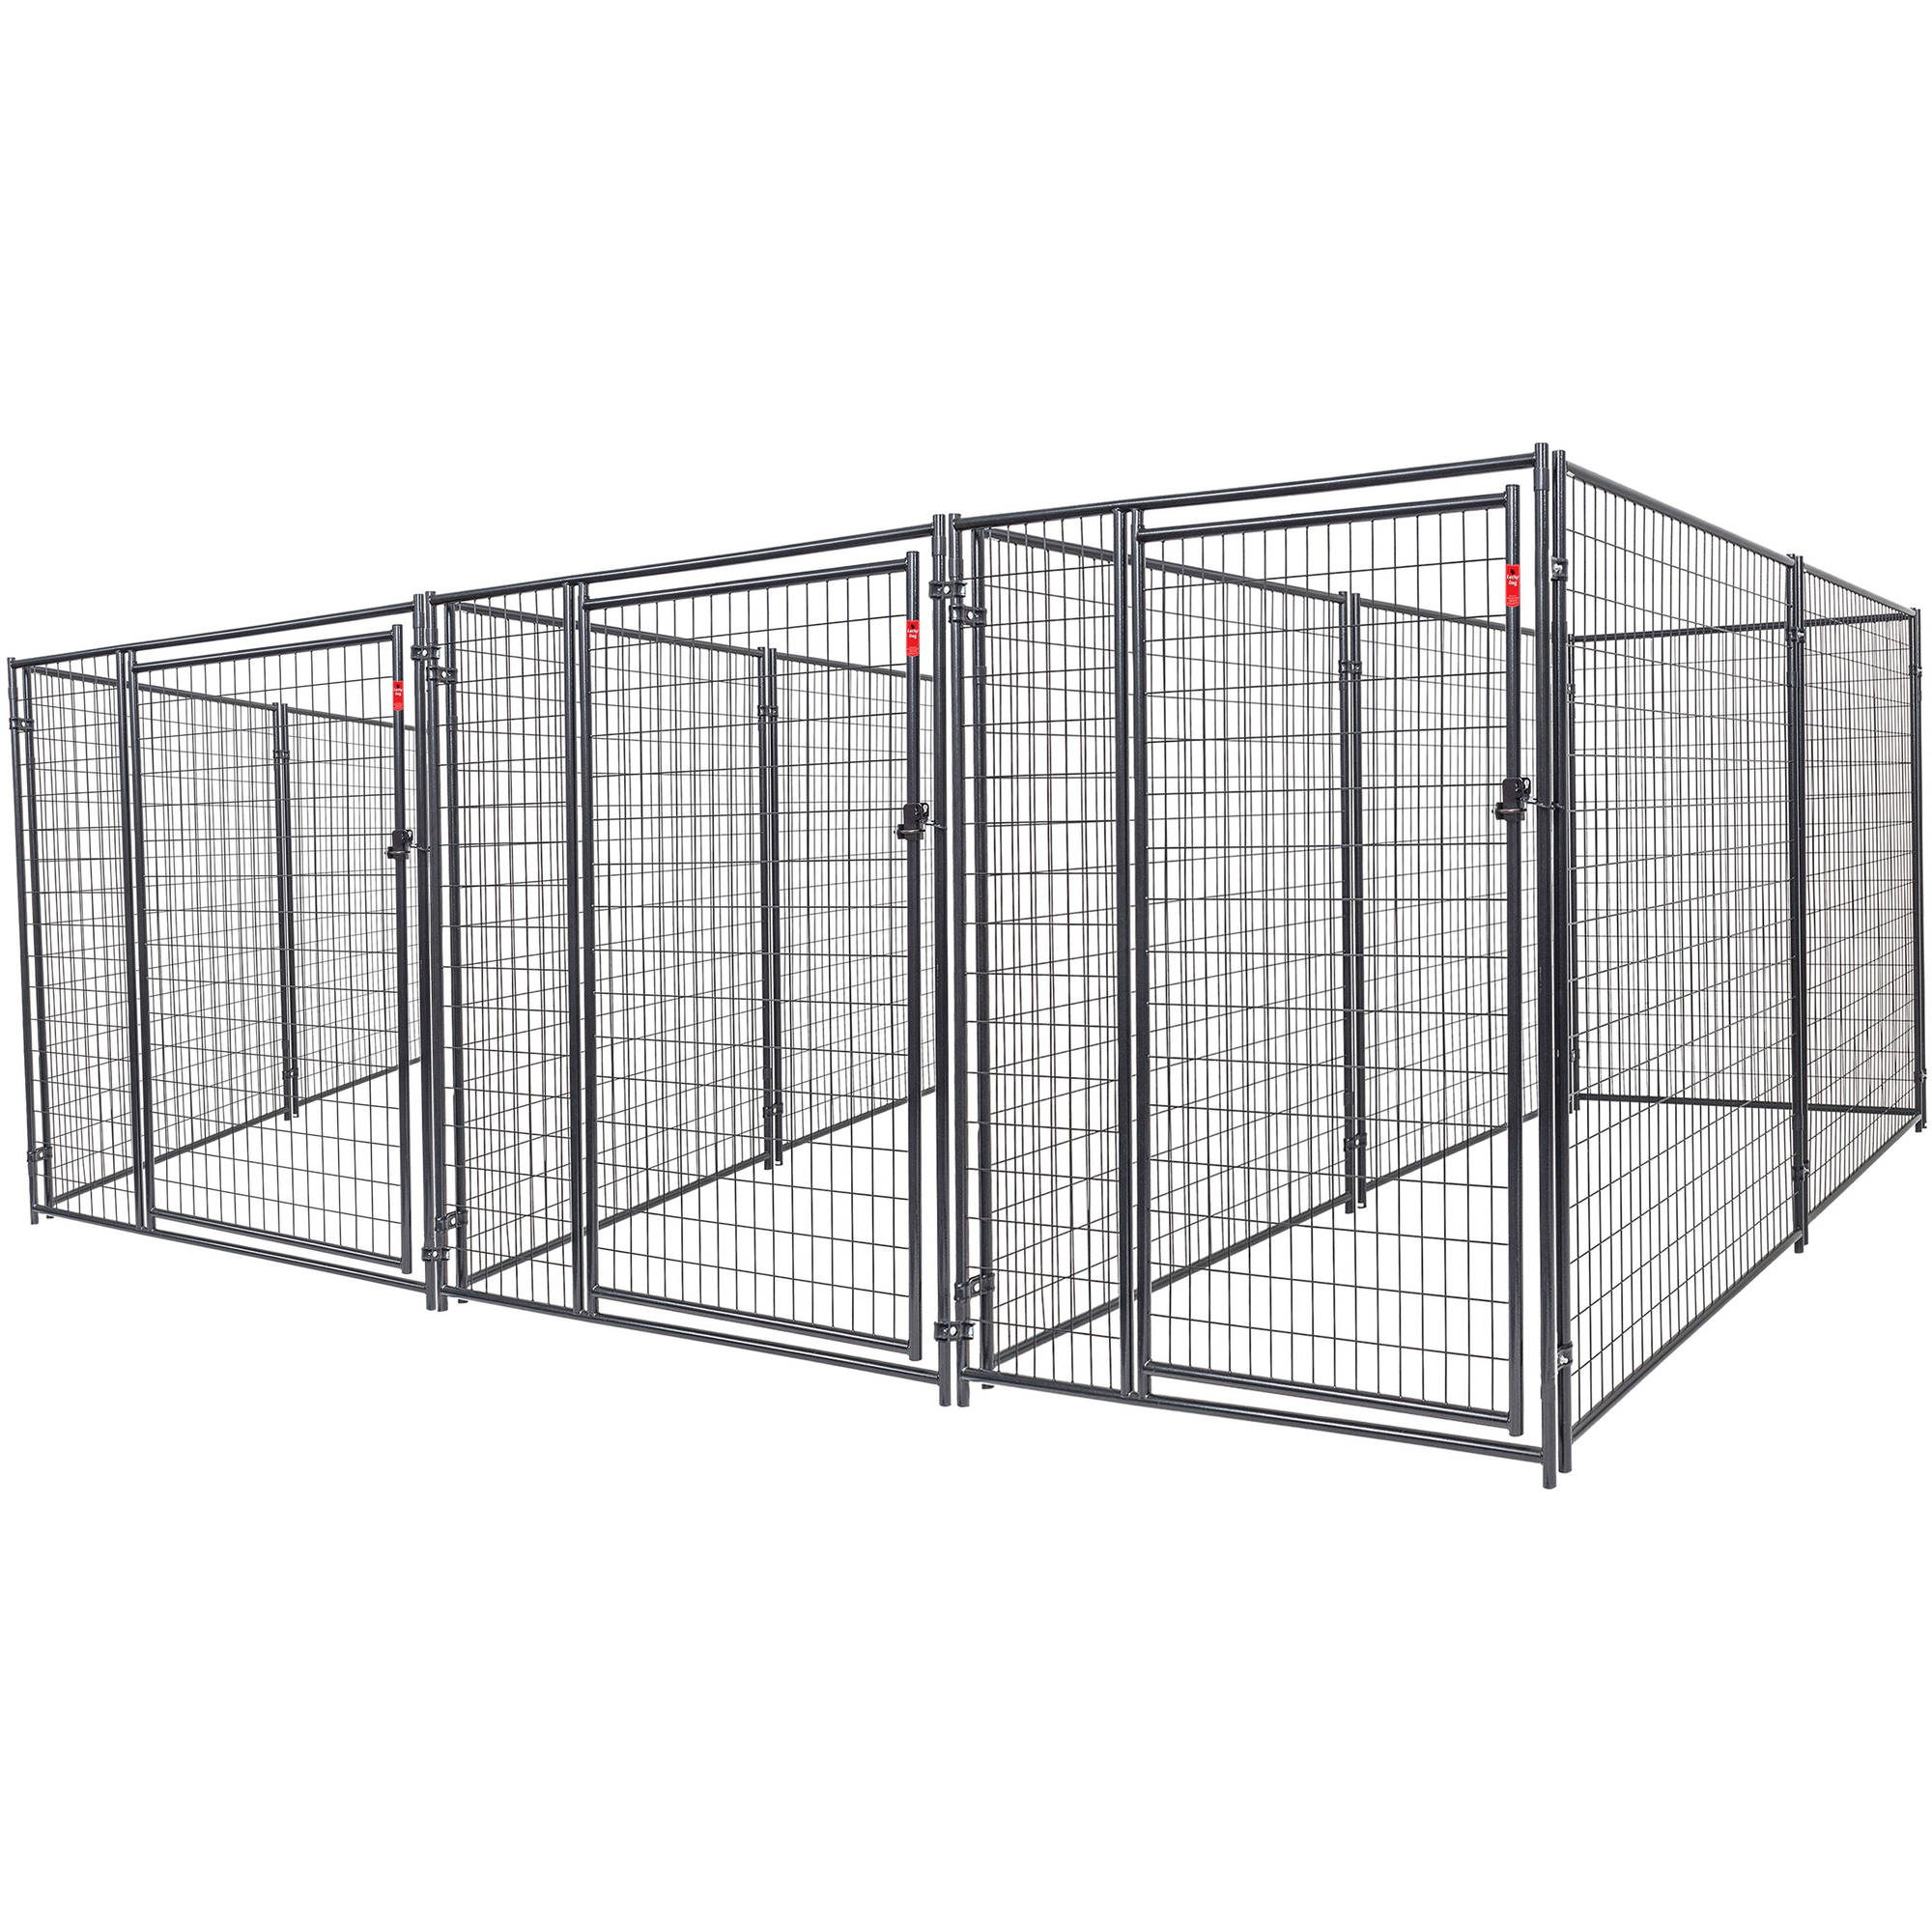 Lucky Dog Heavy Duty Dog Kennel 3 run w/common wall